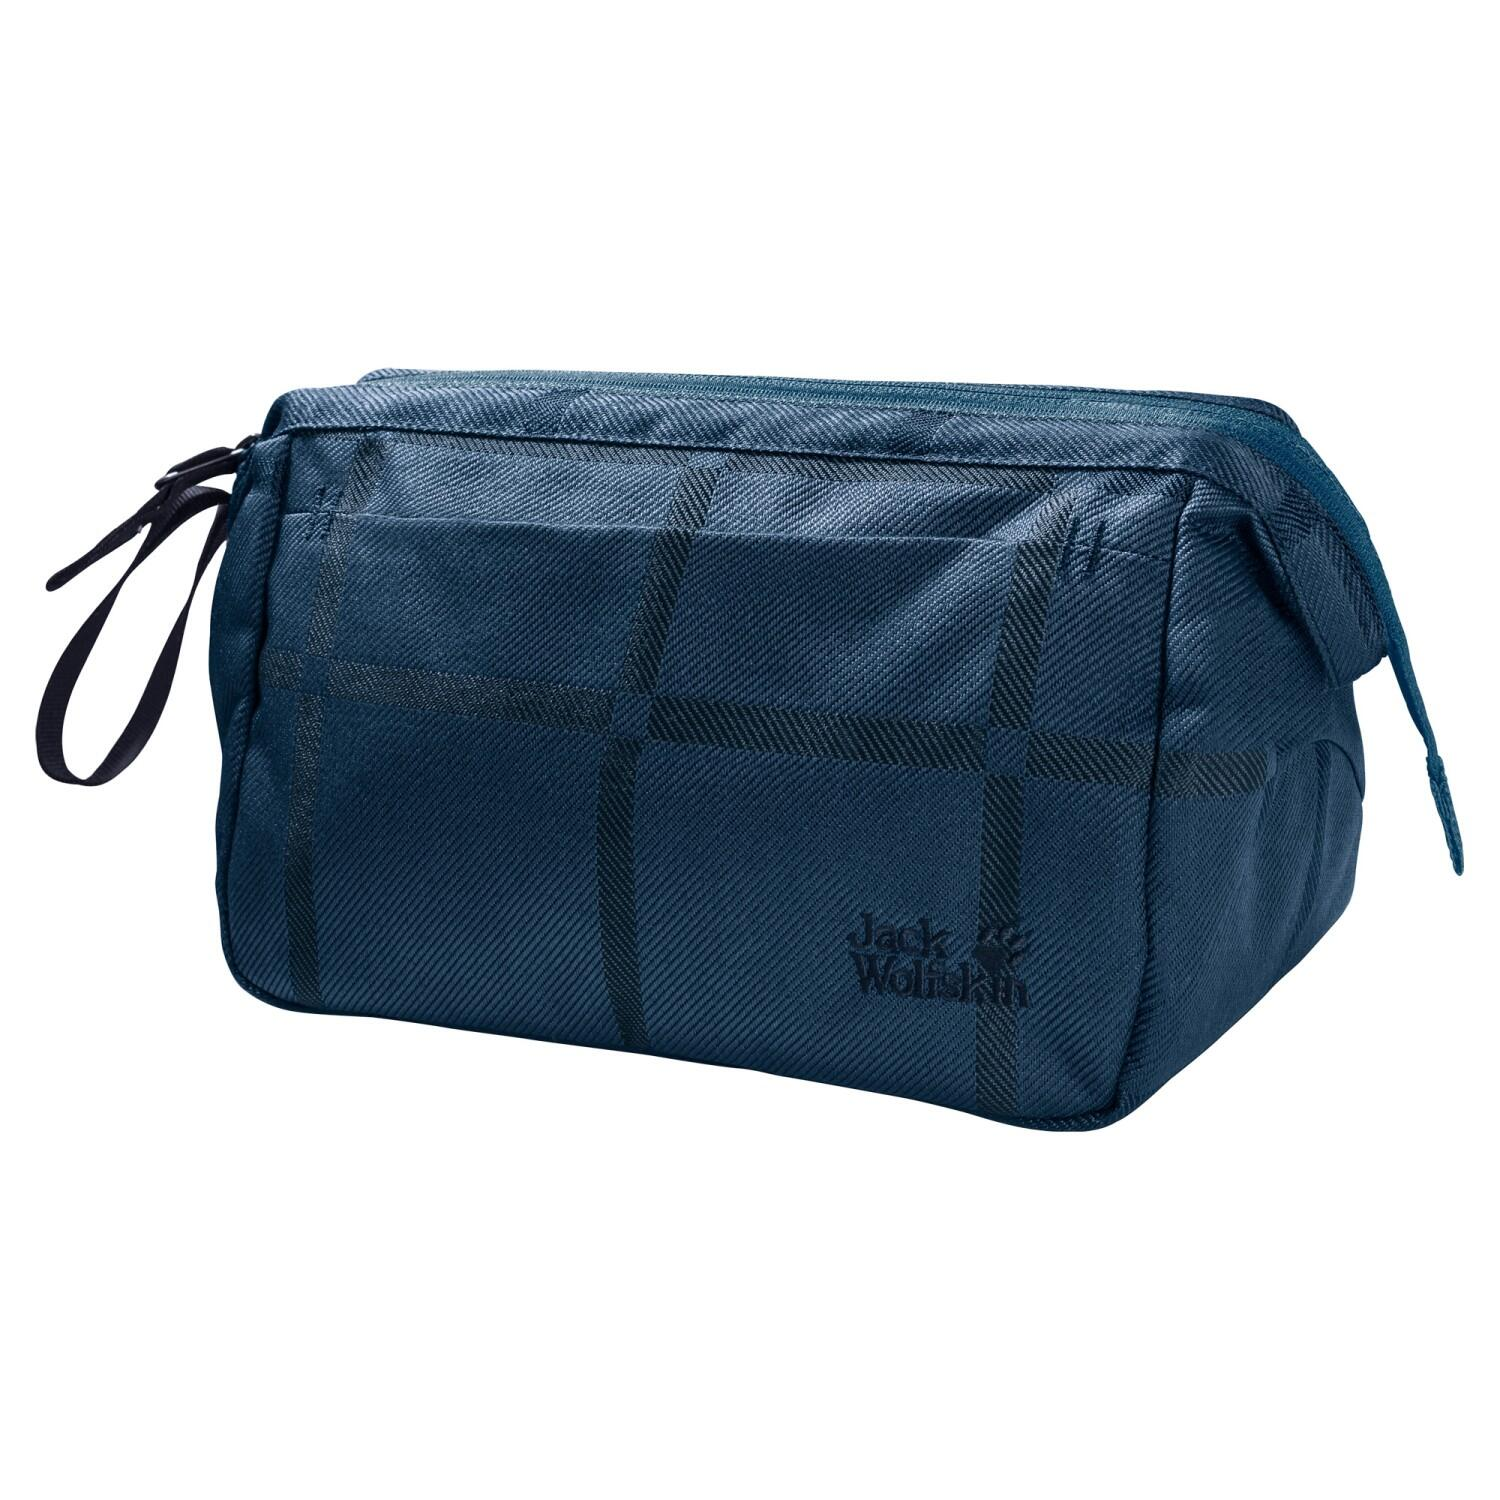 Jack Wolfskin Space Talent Washbag Y.D. Kulturbeutel